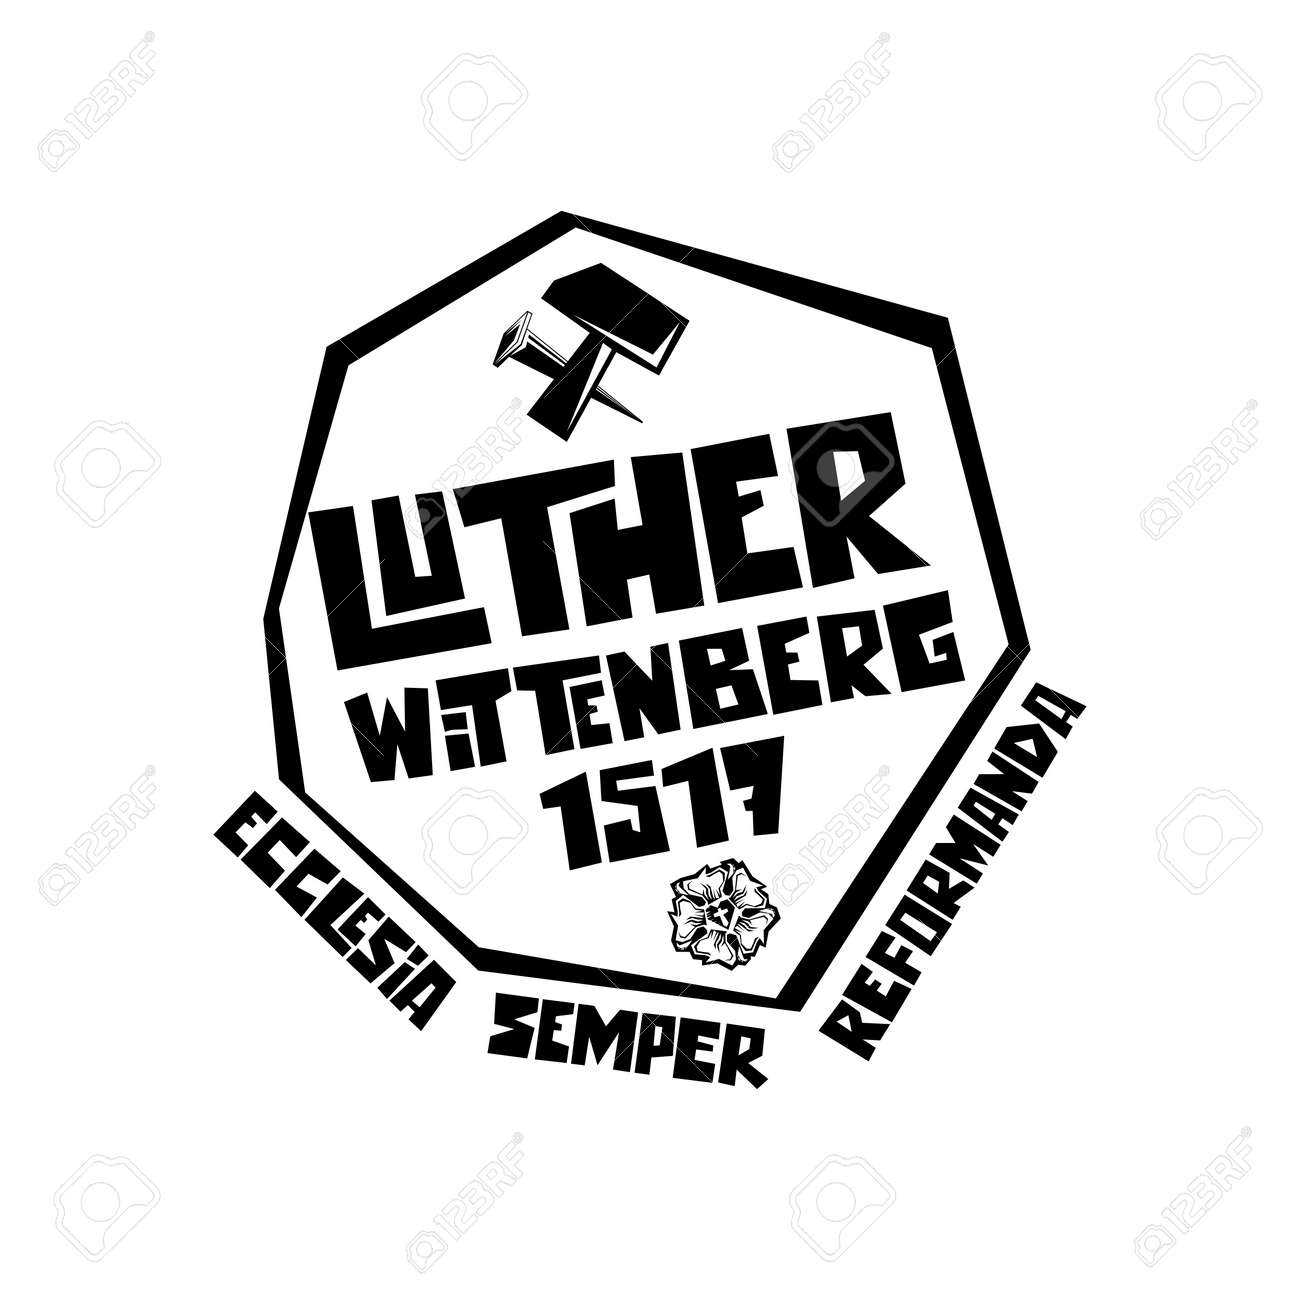 Martin Luther. 95 theses of the reformation of the church. Wittenberg 1517. - 166673464